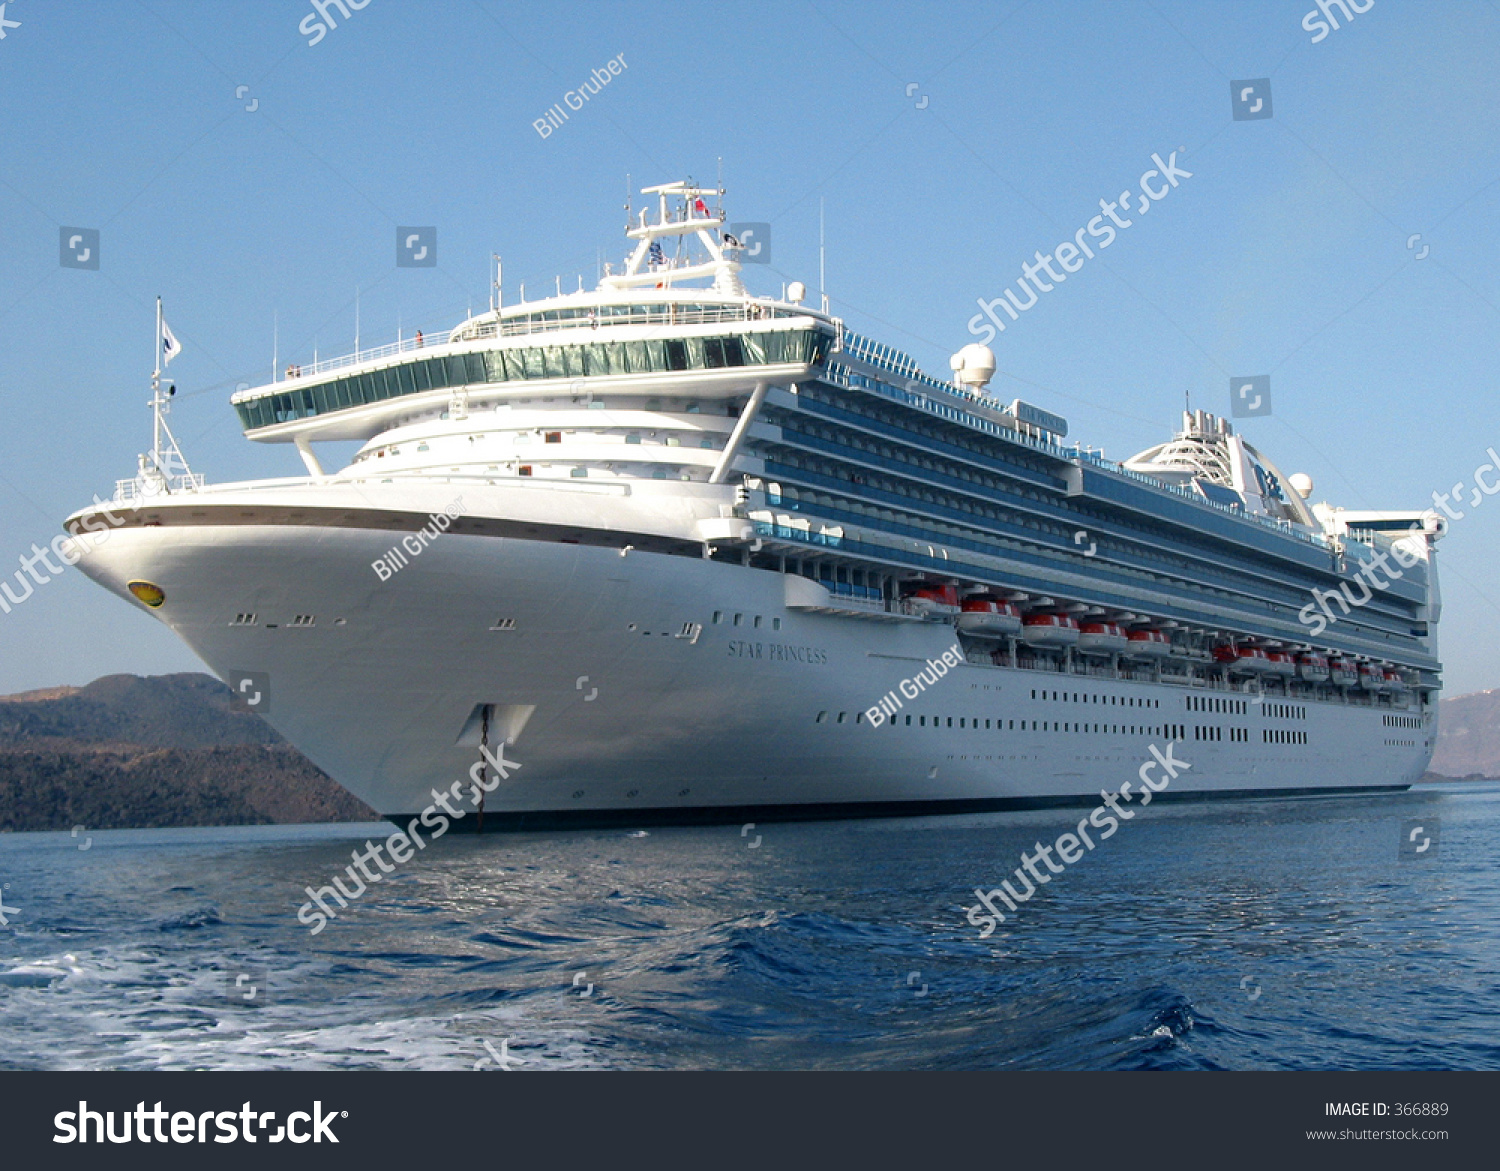 Star Princess Cruise Ship Stock Photo (Edit Now) 366889